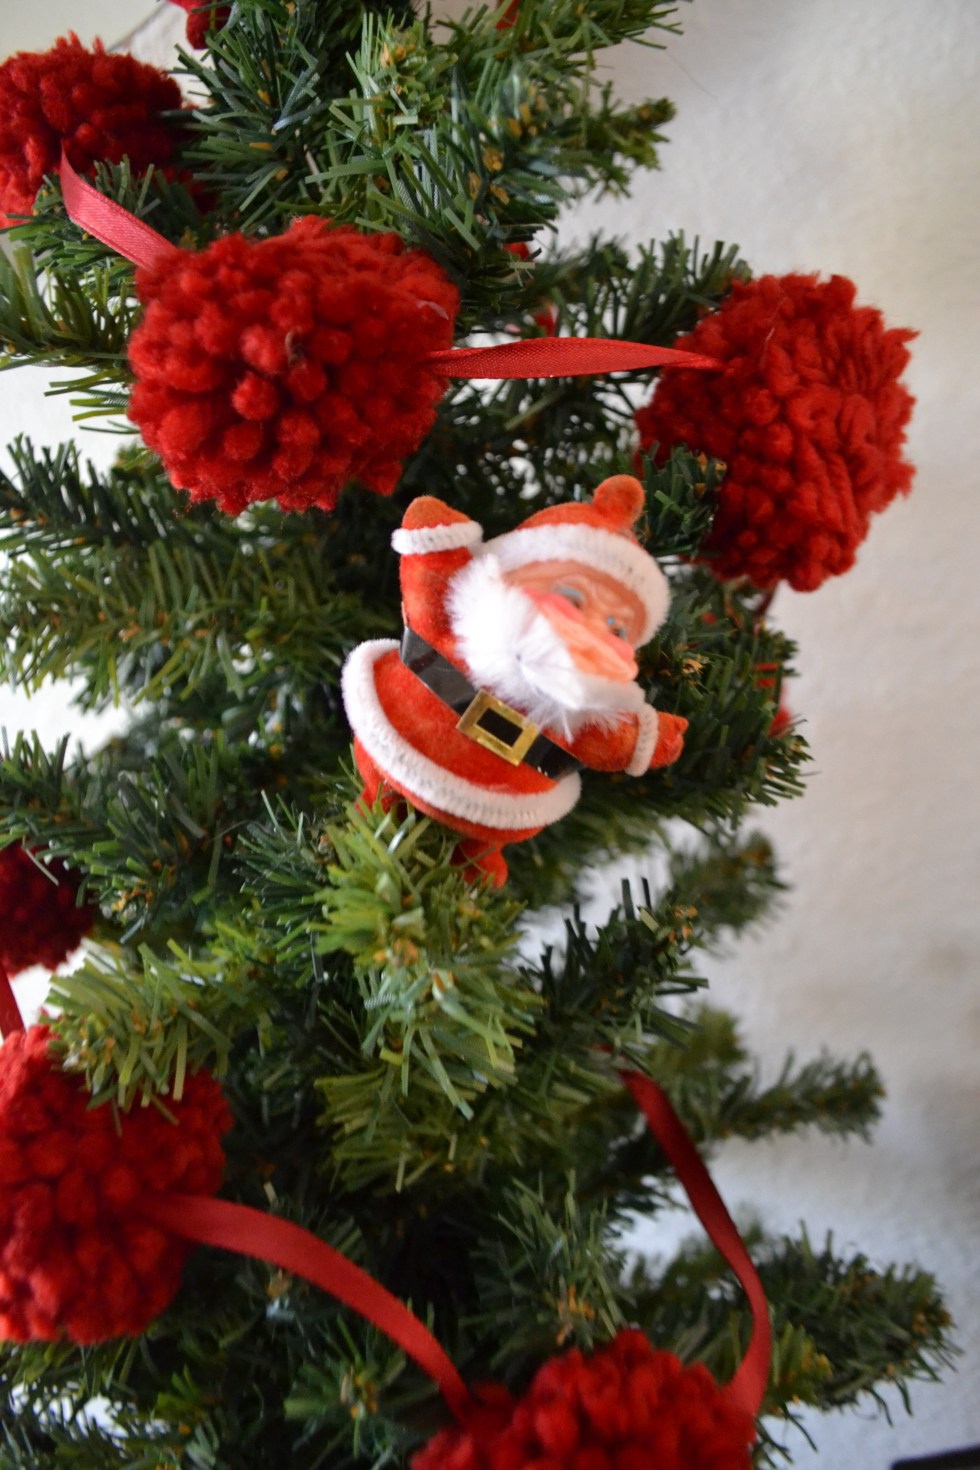 A vintage Santa is displayed in a fake Christmas tree with red yarn pom pom garland